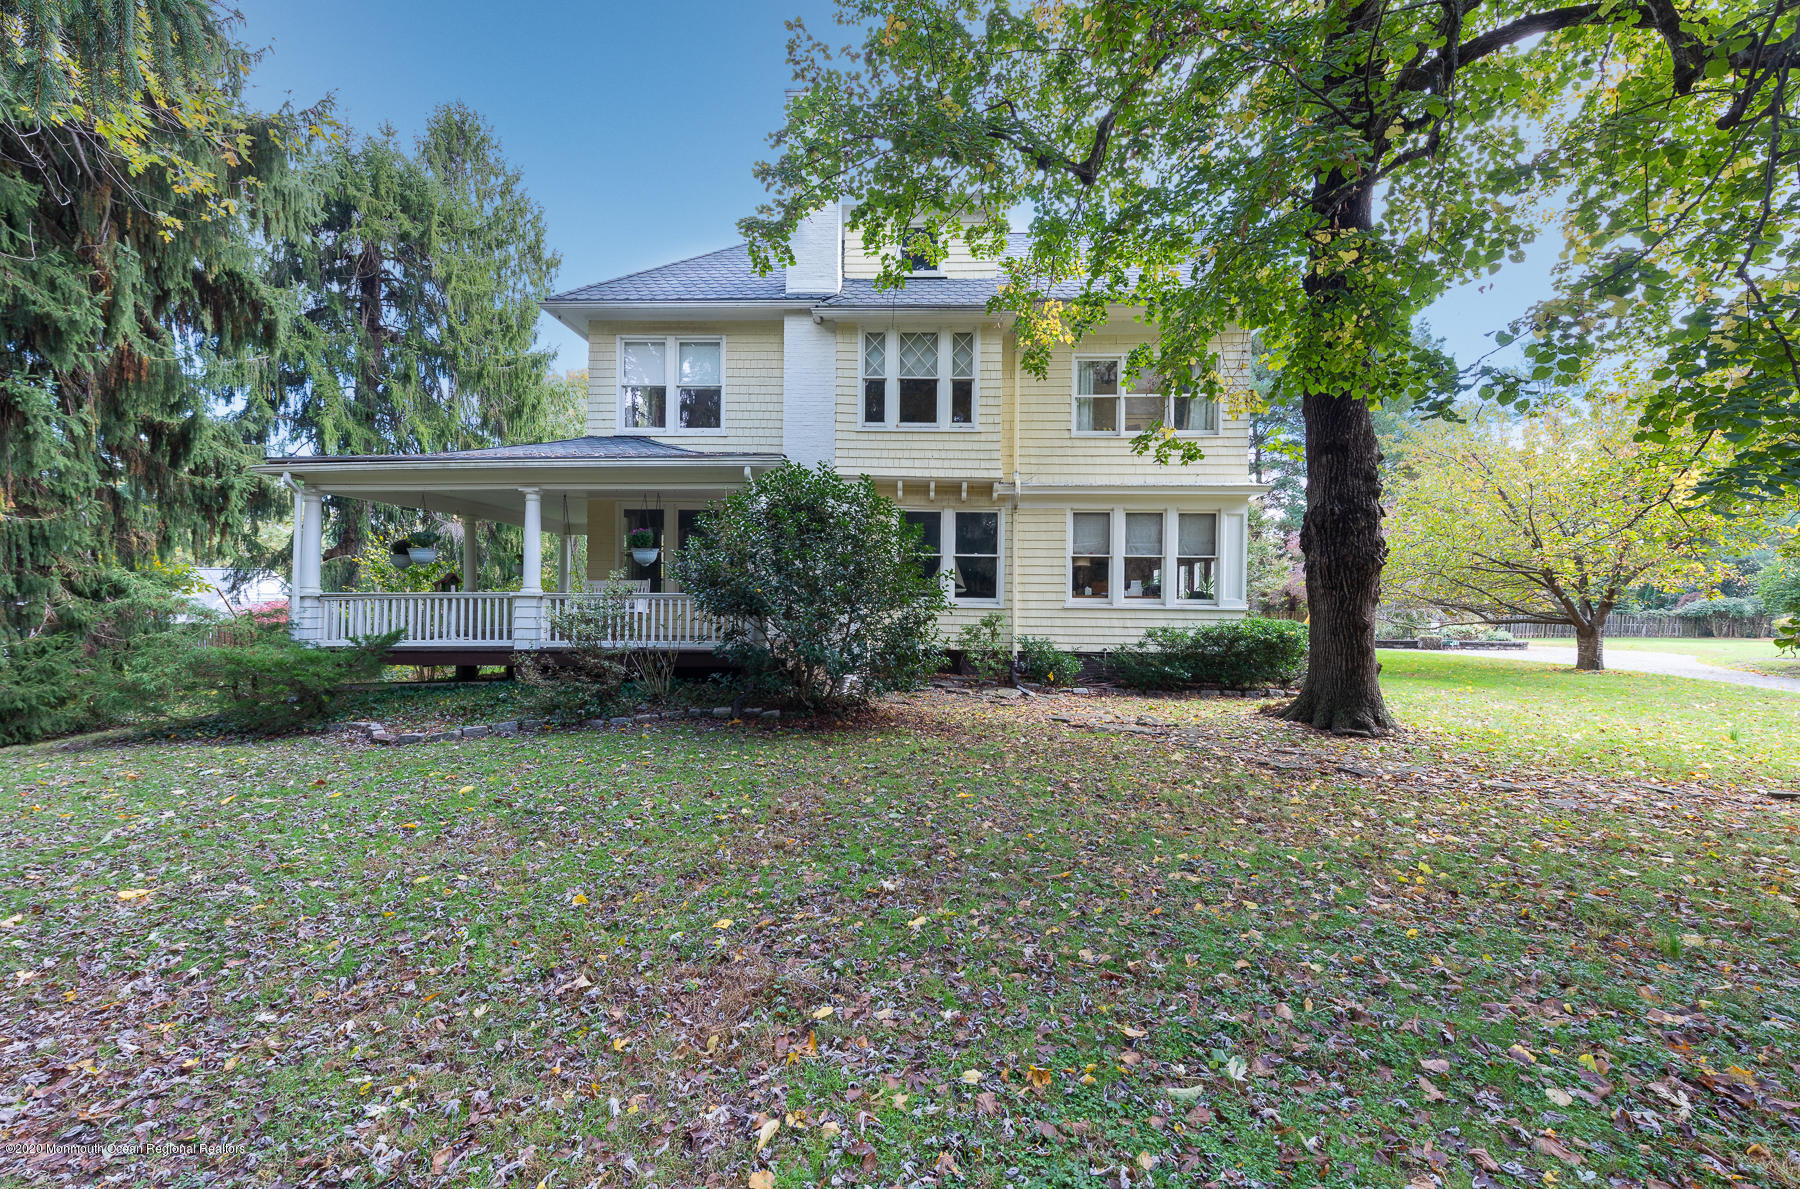 Photo of 2180 Middletown Lincroft Road, Middletown, NJ 07748